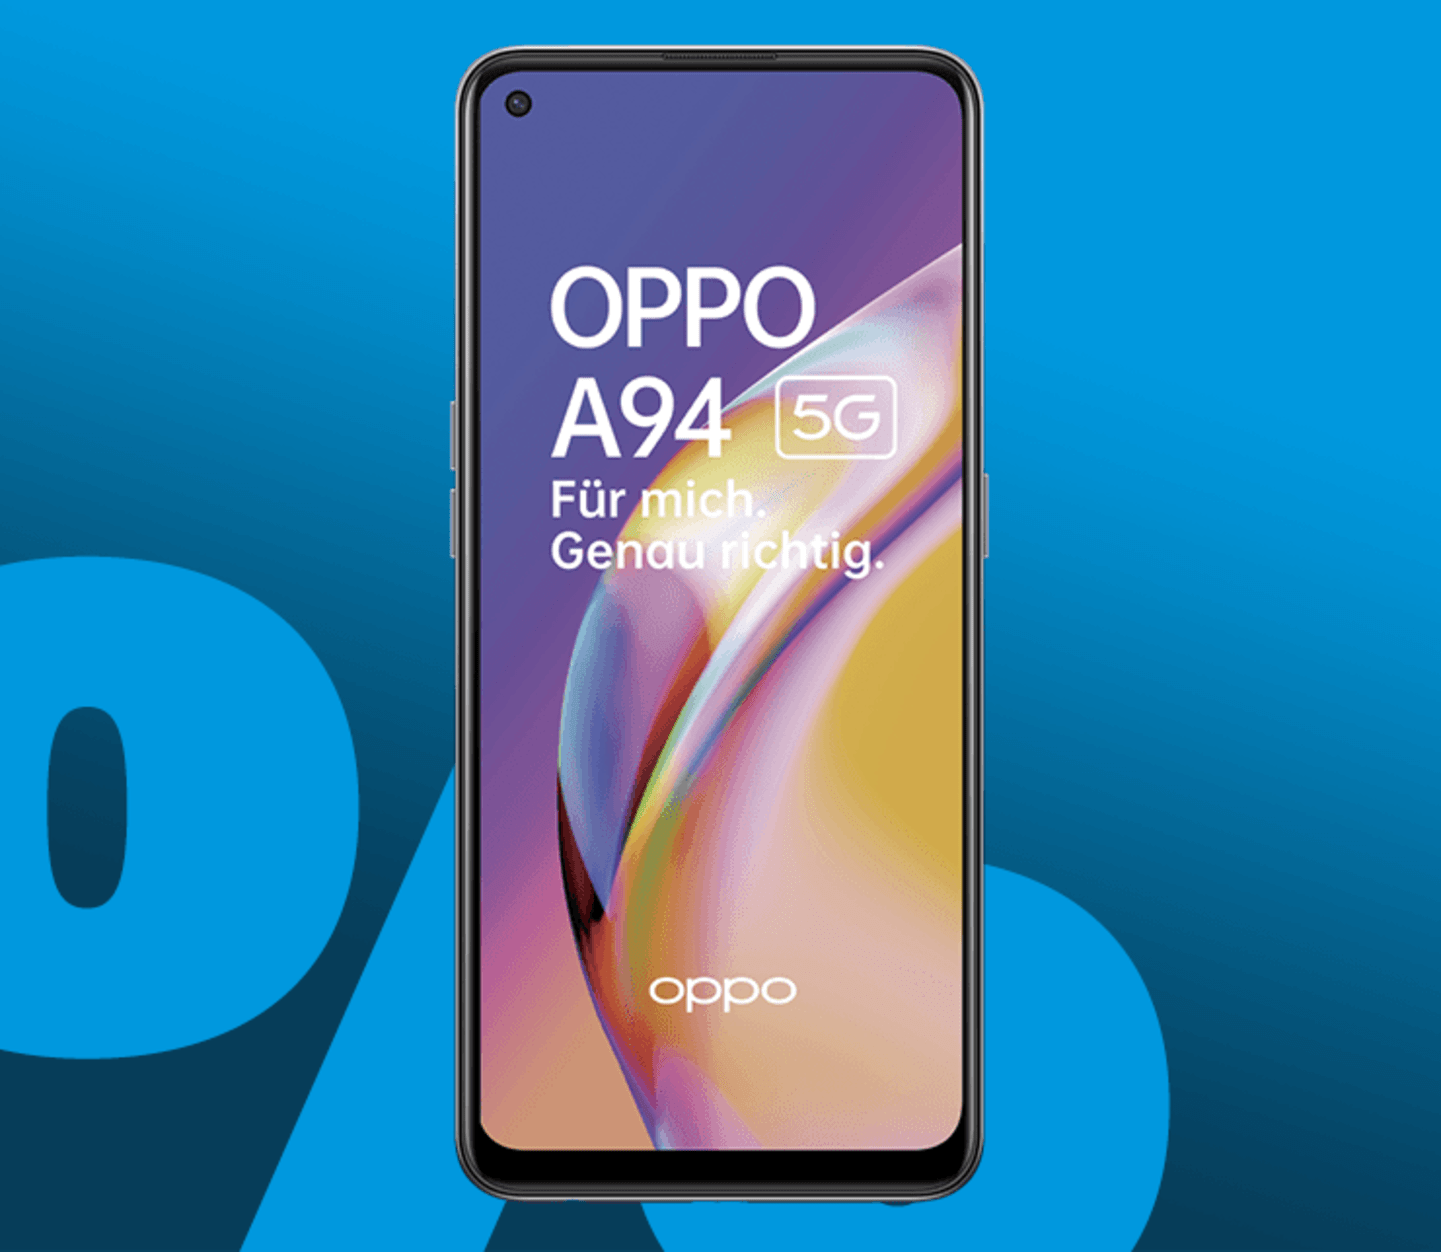 OPPO - A94 Smartphone 5G